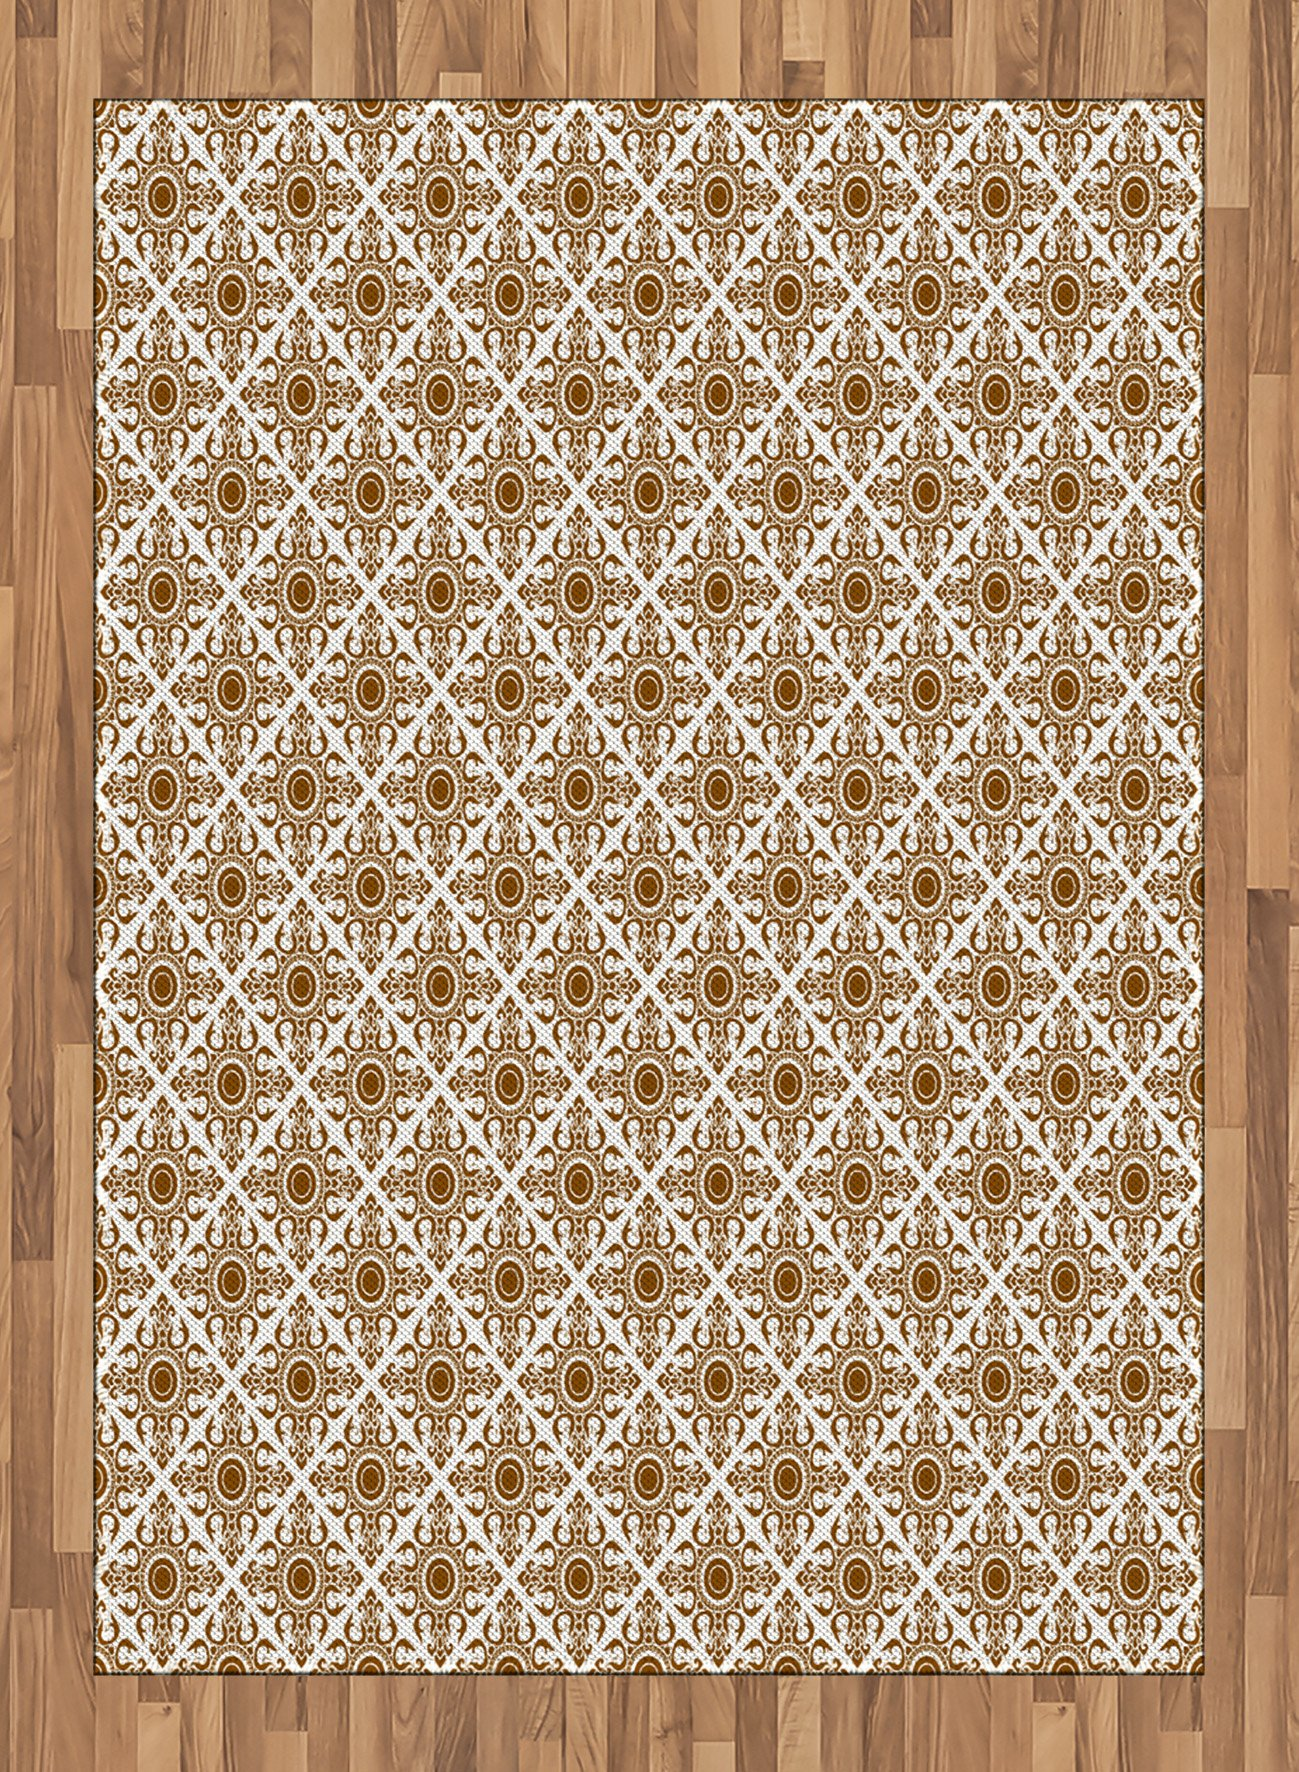 Ethnic Area Rug by Ambesonne, Thai Mosaic Art Culture Stylized Abstract Lines Dots Pattern Folk Asian Design, Flat Woven Accent Rug for Living Room Bedroom Dining Room, 5.2 x 7.5 FT, Redwood White by Ambesonne